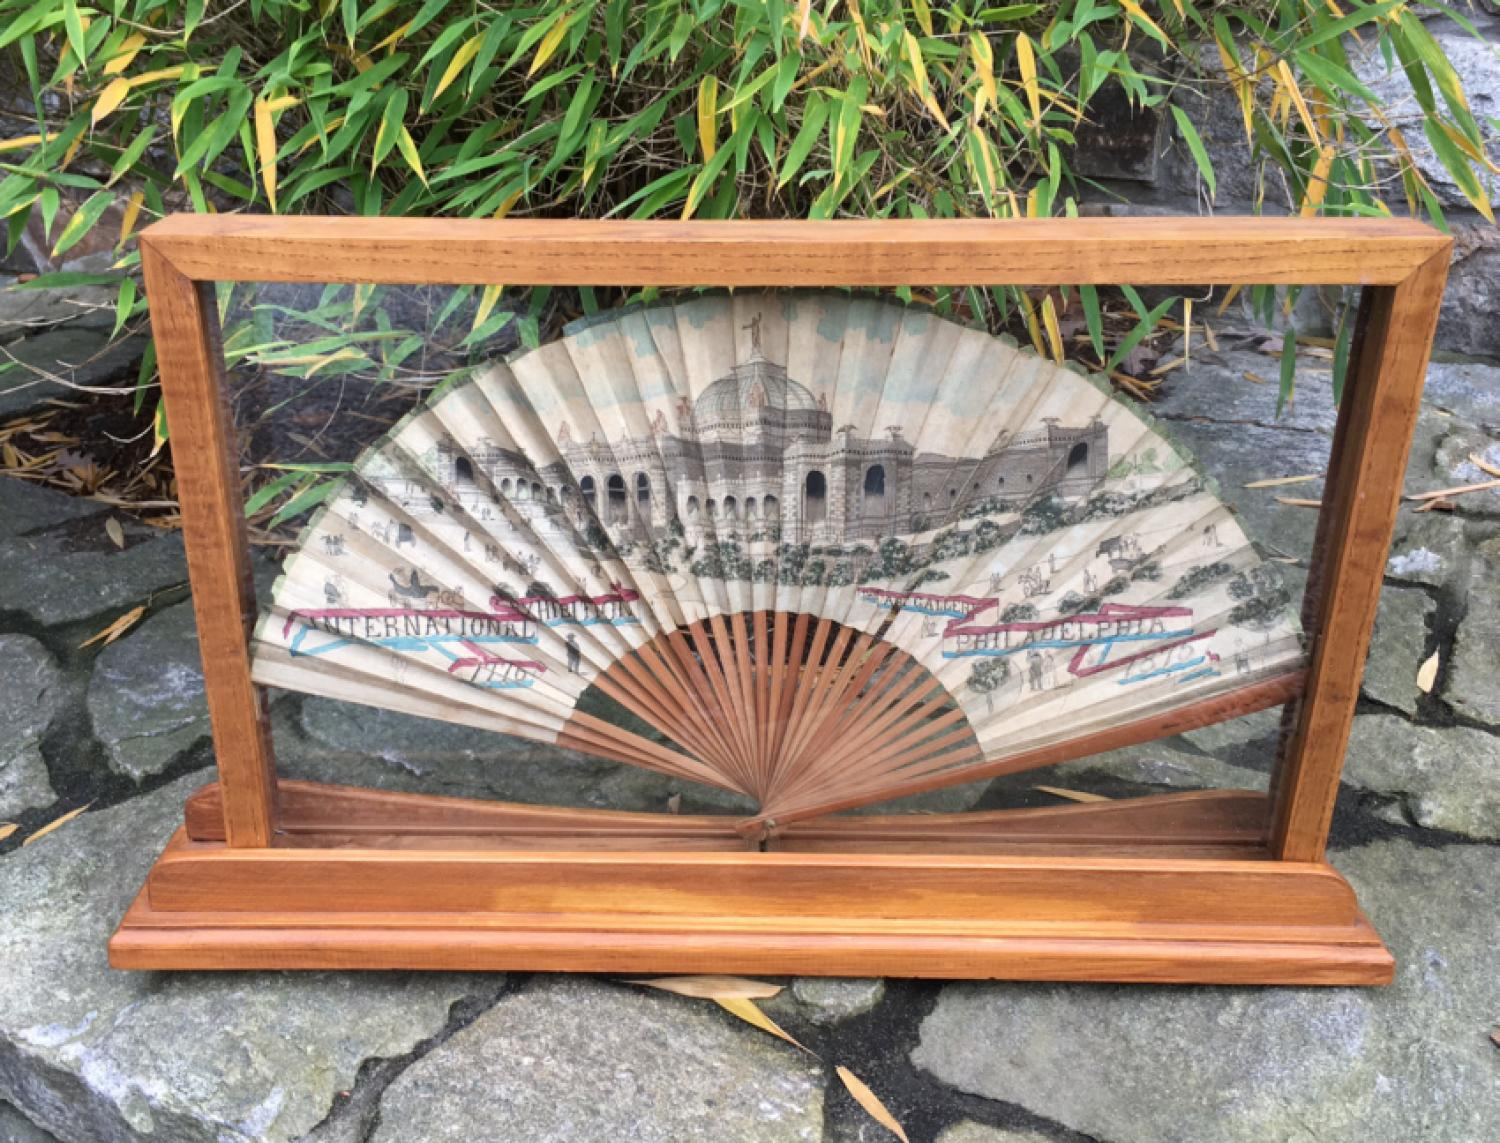 International Exhibition Philadelphia 1876 commemorative fan